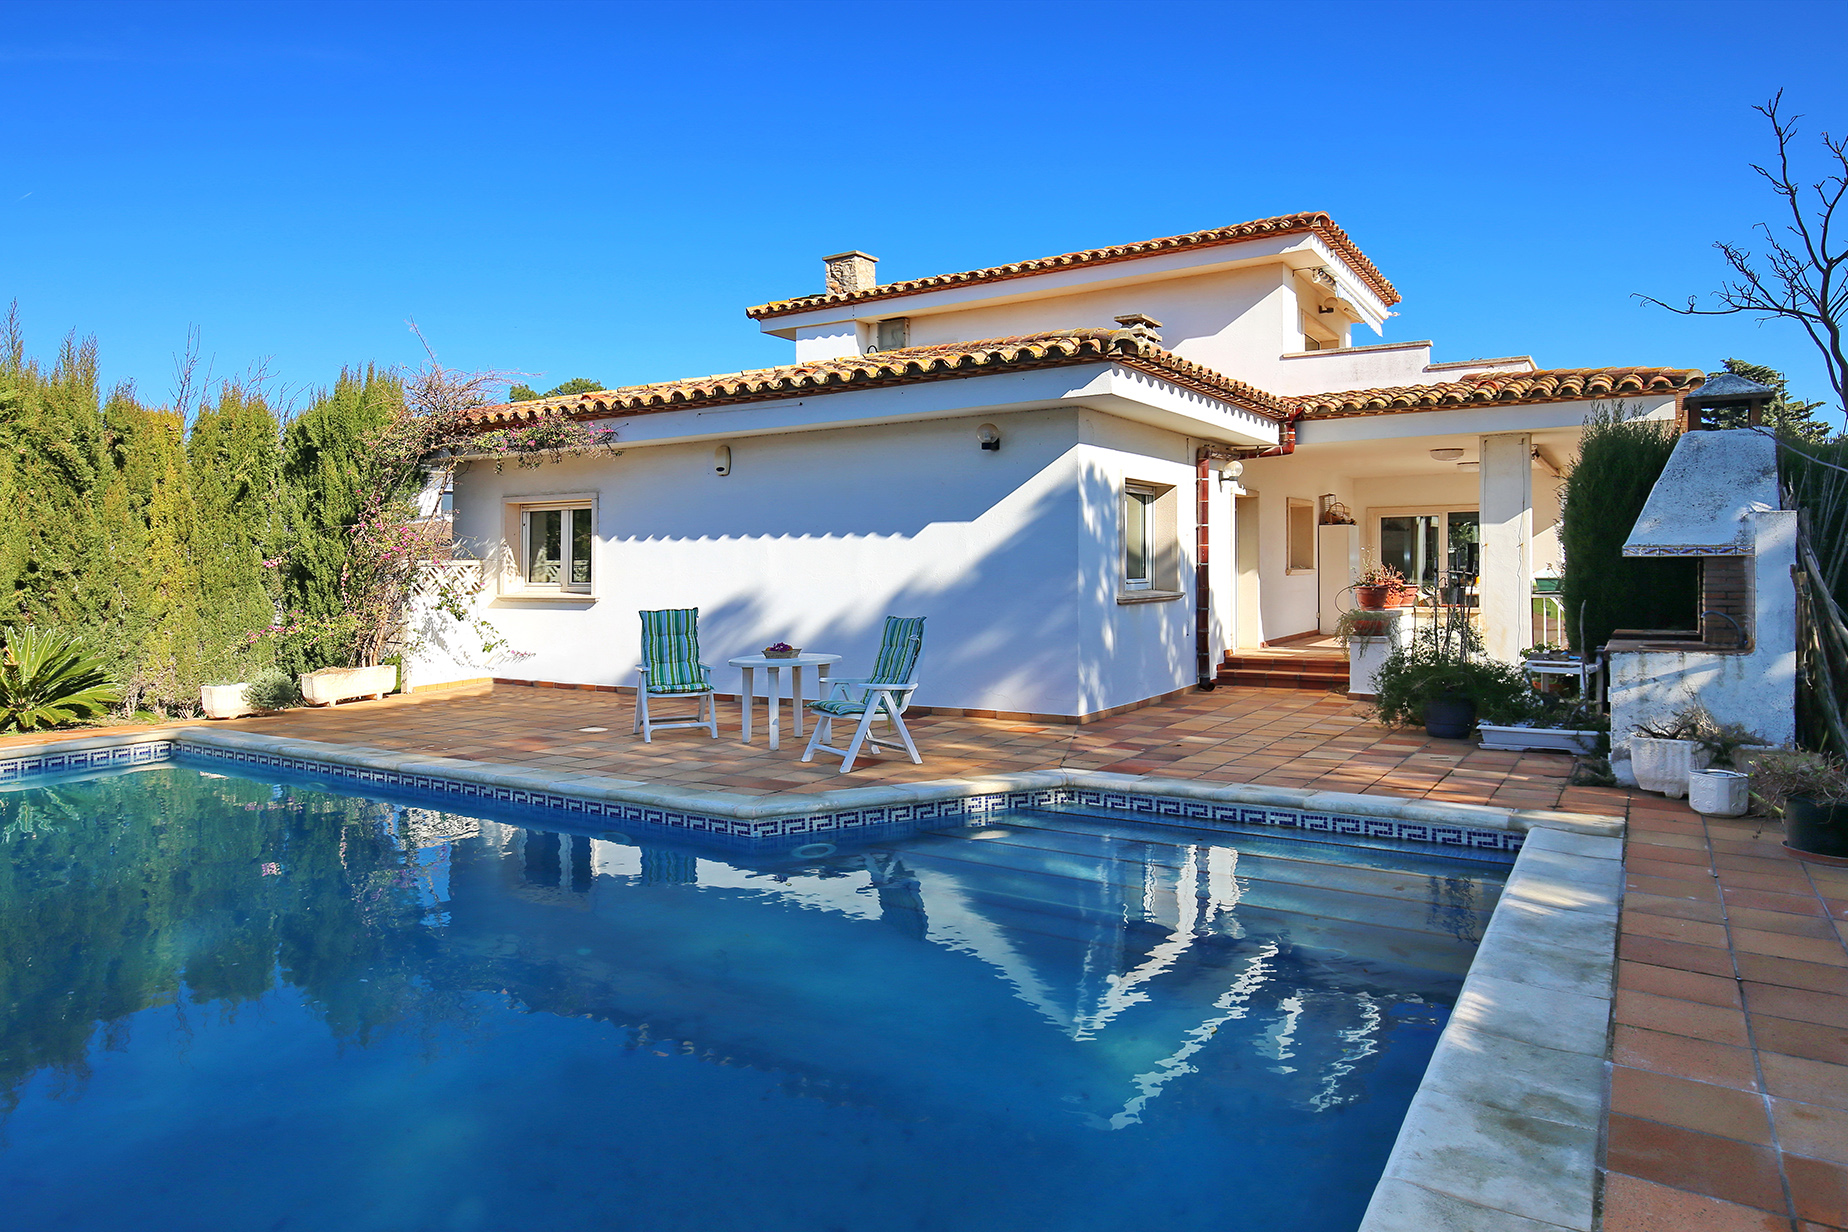 Single Family Home for Sale at Very nice house in L'Escala L Escala, Costa Brava, 17130 Spain